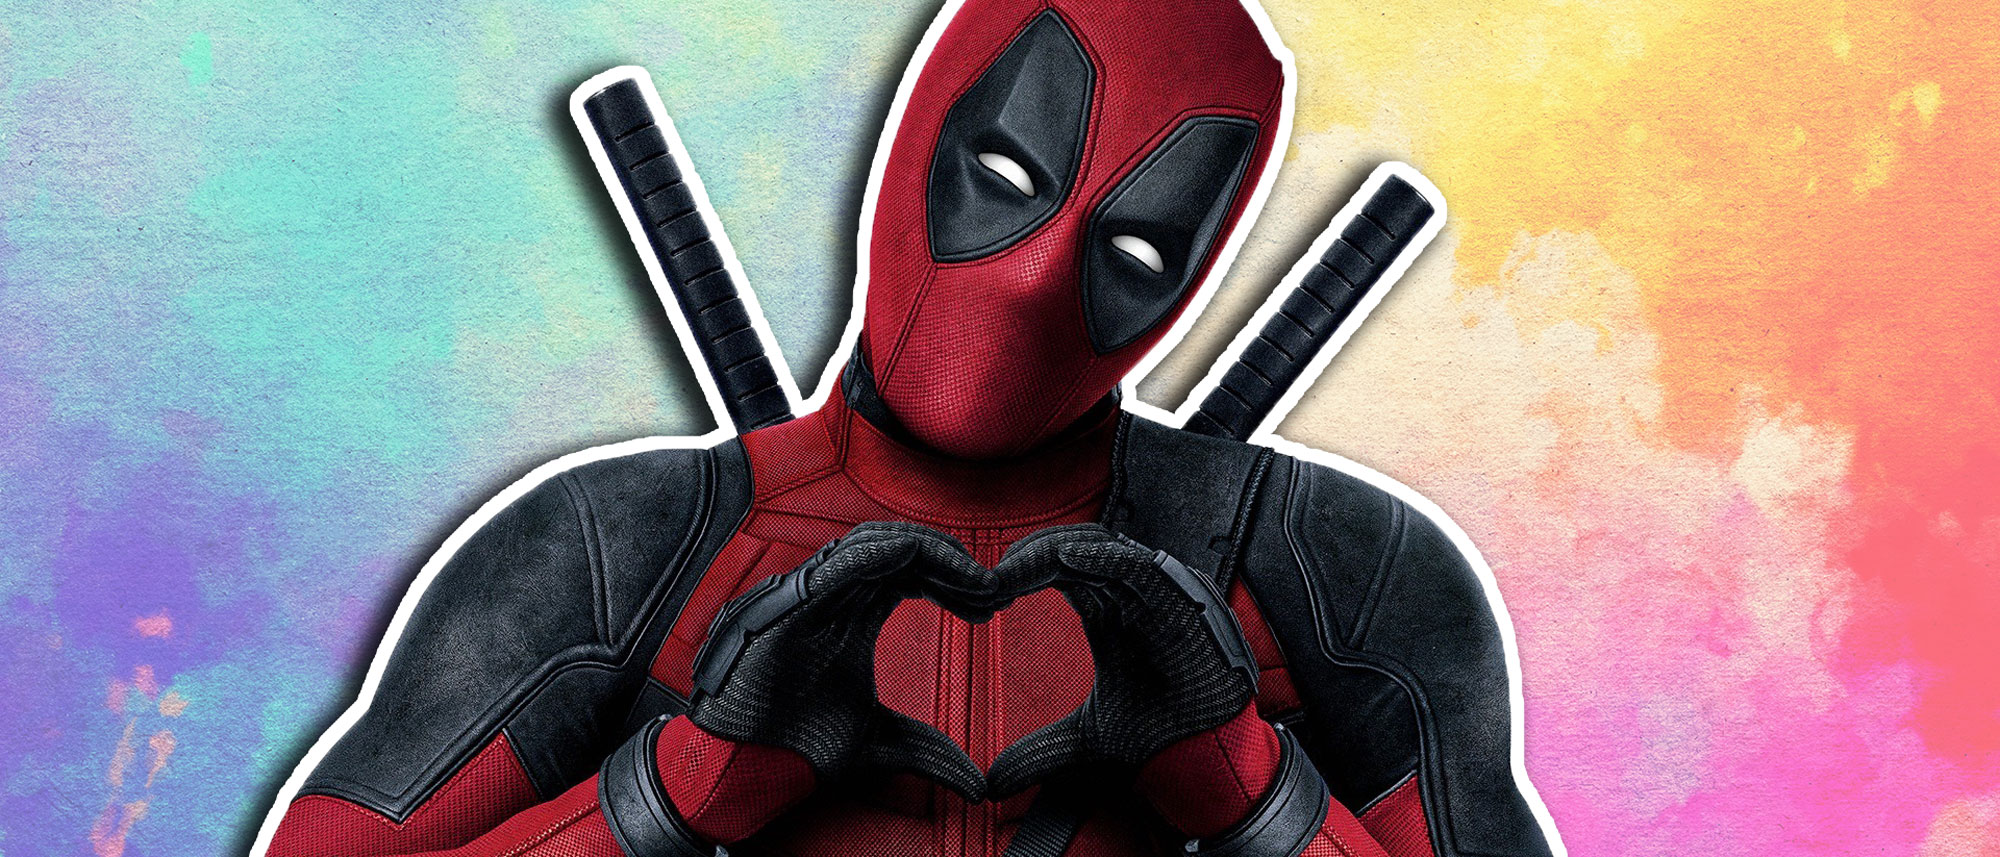 Deadpool coming to the MCU and the multiverse?